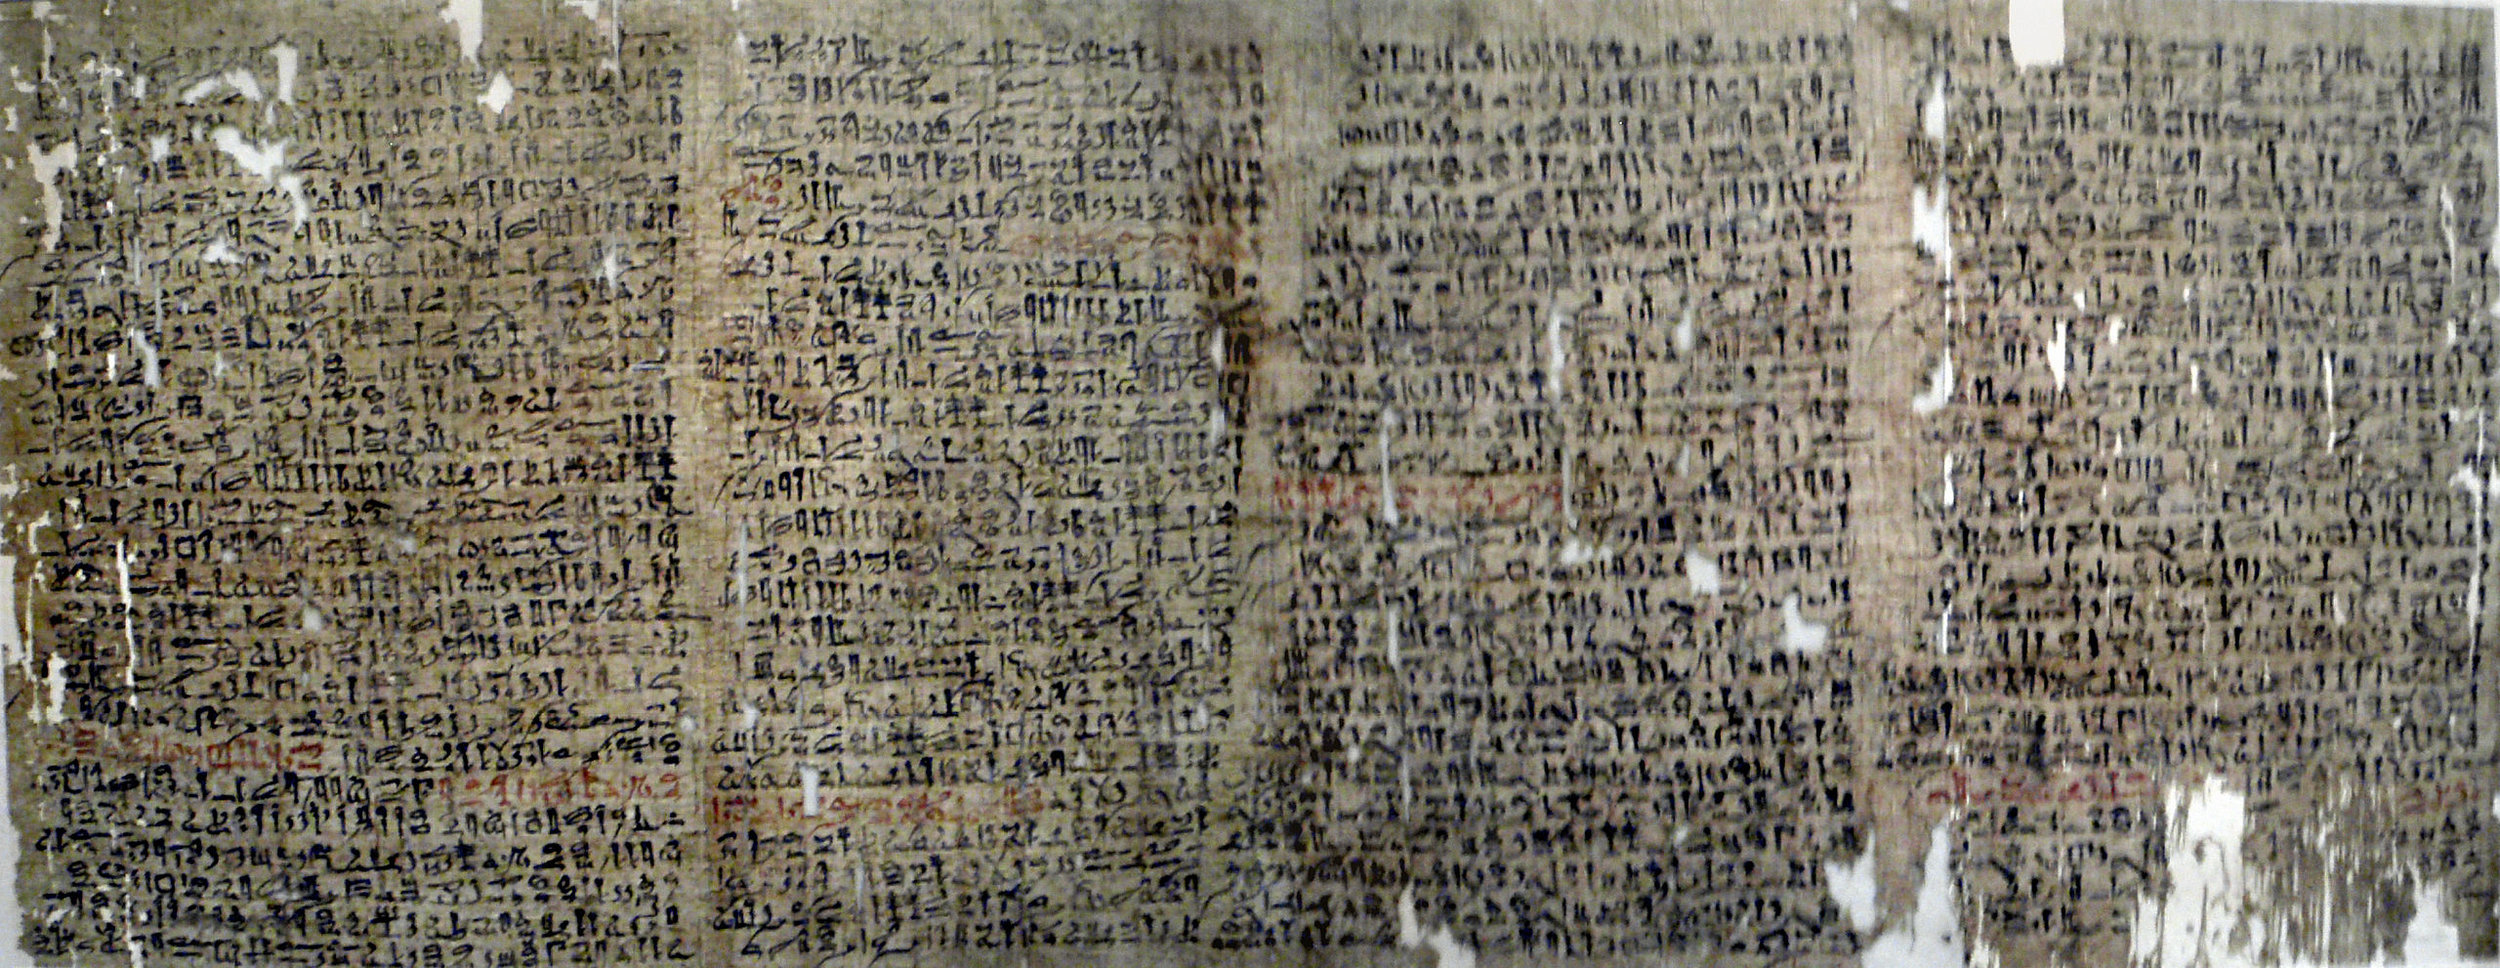 The Westcar Papyrus dates to around the 18th Century BCE and seems to tell the story of a magician performing 'miracles' in the court of the Egyptian pharaoh Khufu. While the story is probably best considered as a fairy tale  rather than a historical account , it nonetheless shows that the idea of performing miraculous tricks for audiences dates back to some of the world's earliest written records.